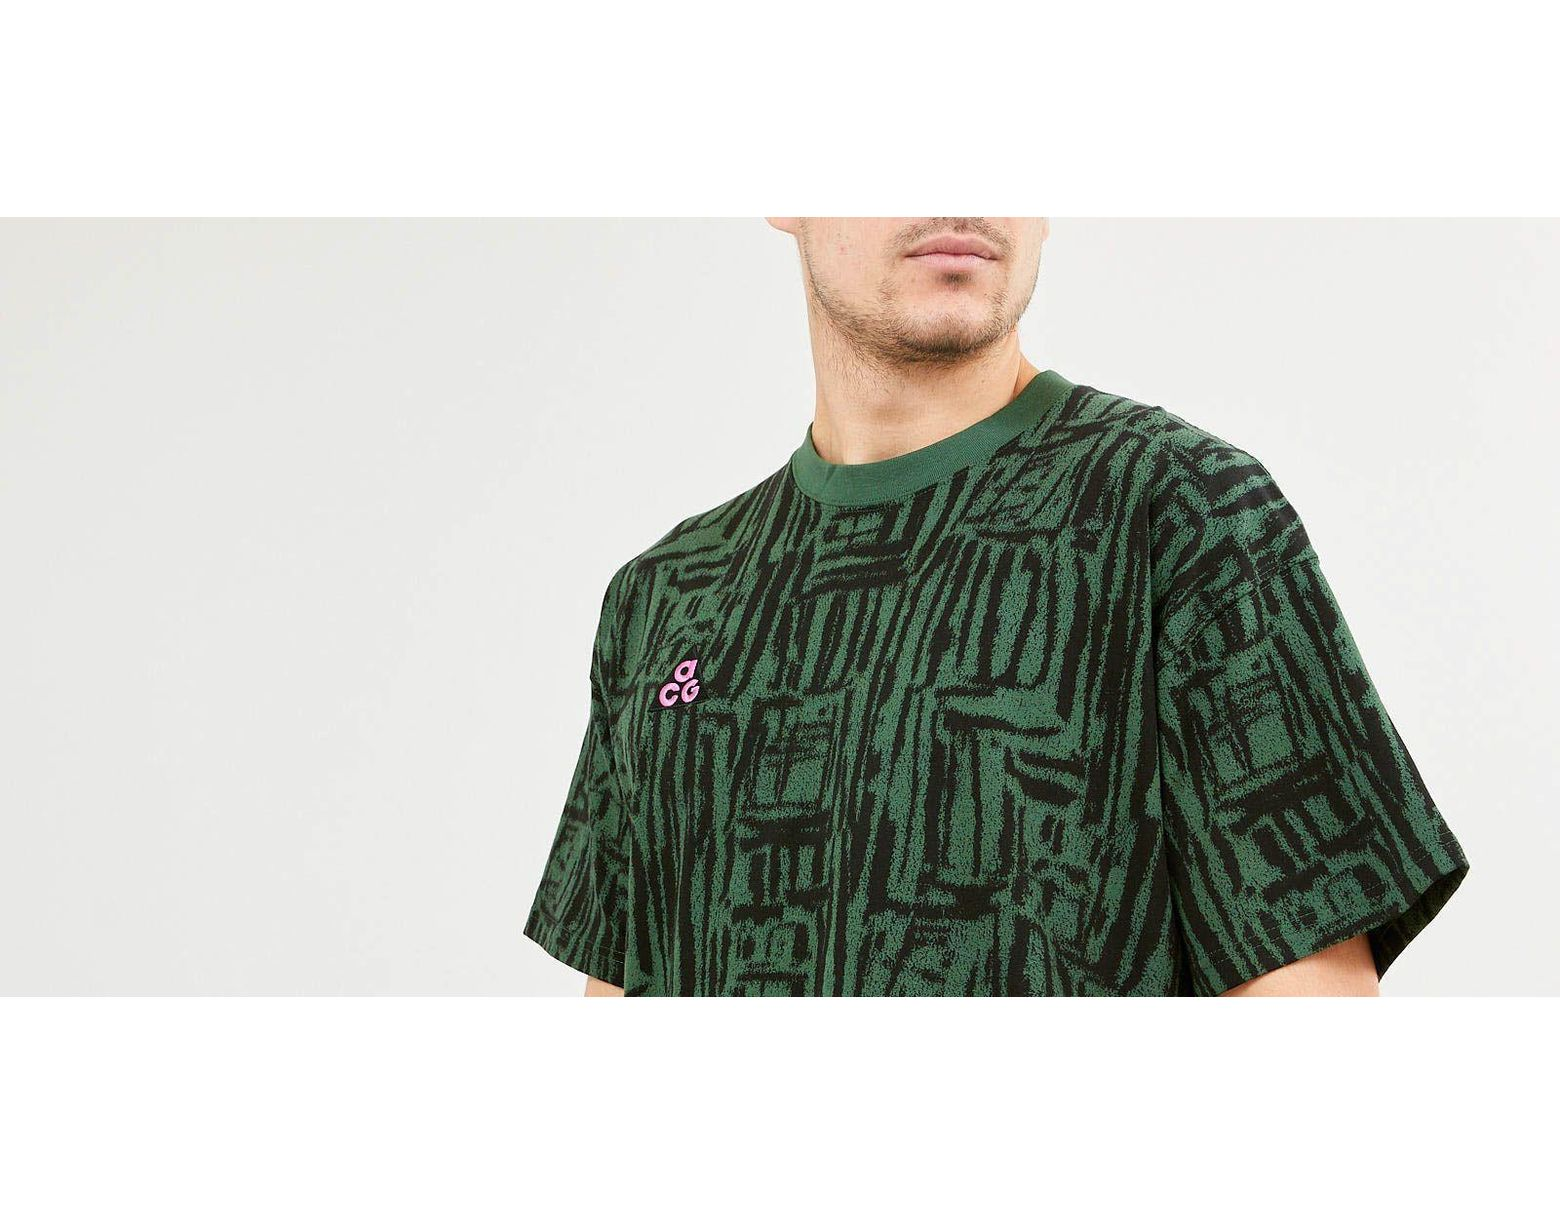 71a97297 Nike Acg Aop Tee Nrg Fir Green/ Black in Green for Men - Lyst